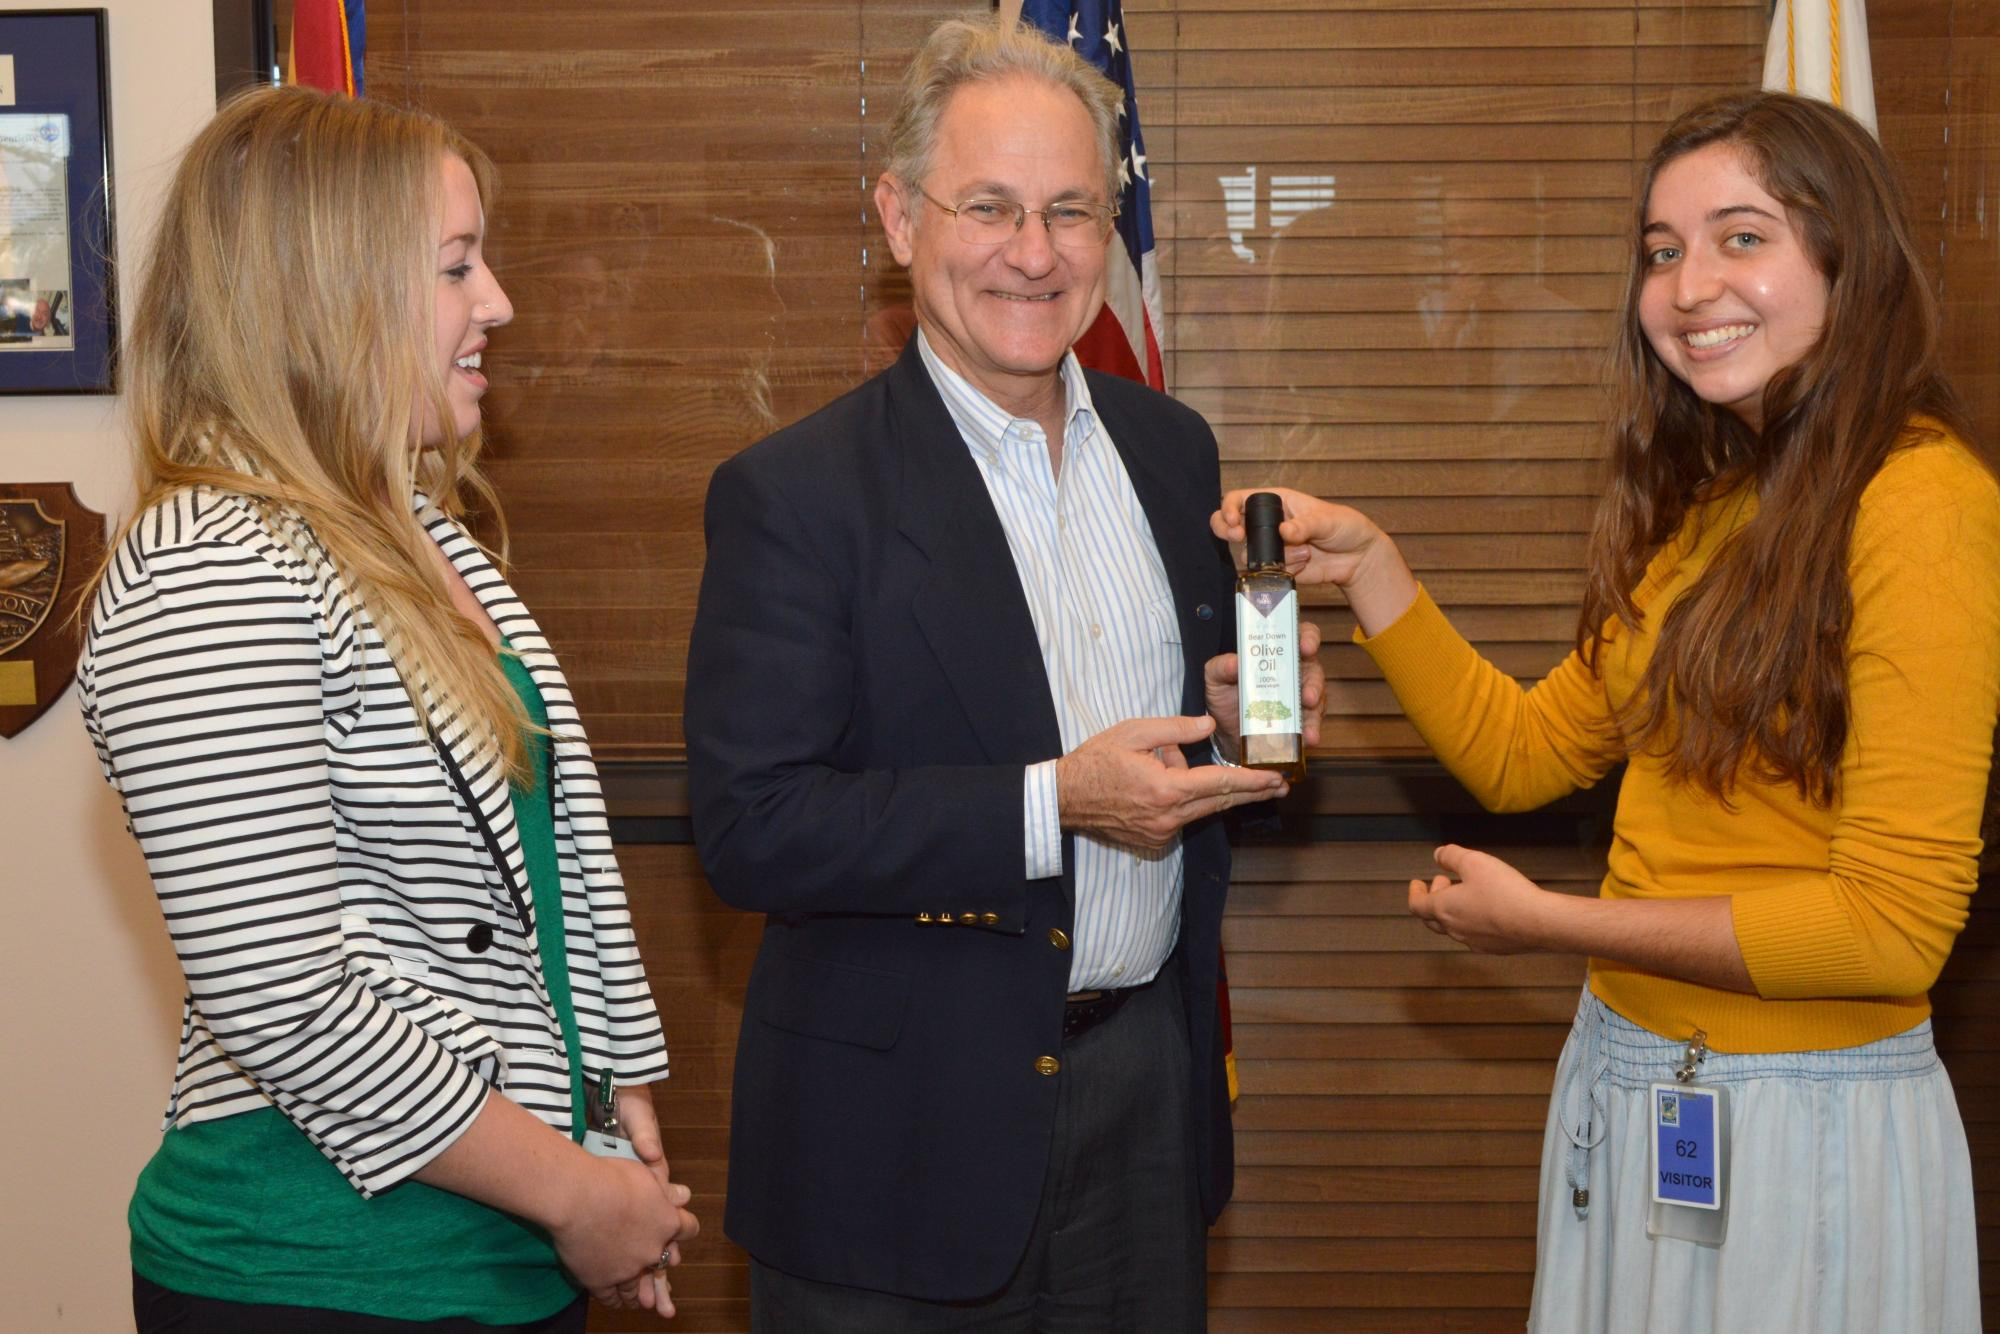 LEAF interns Haley Anderson  and Tori Scaven present Tucson Mayor Jonathan Rothschild on Dec. 5 with a bottle of oil pressed from olives harvested on the UA campus.